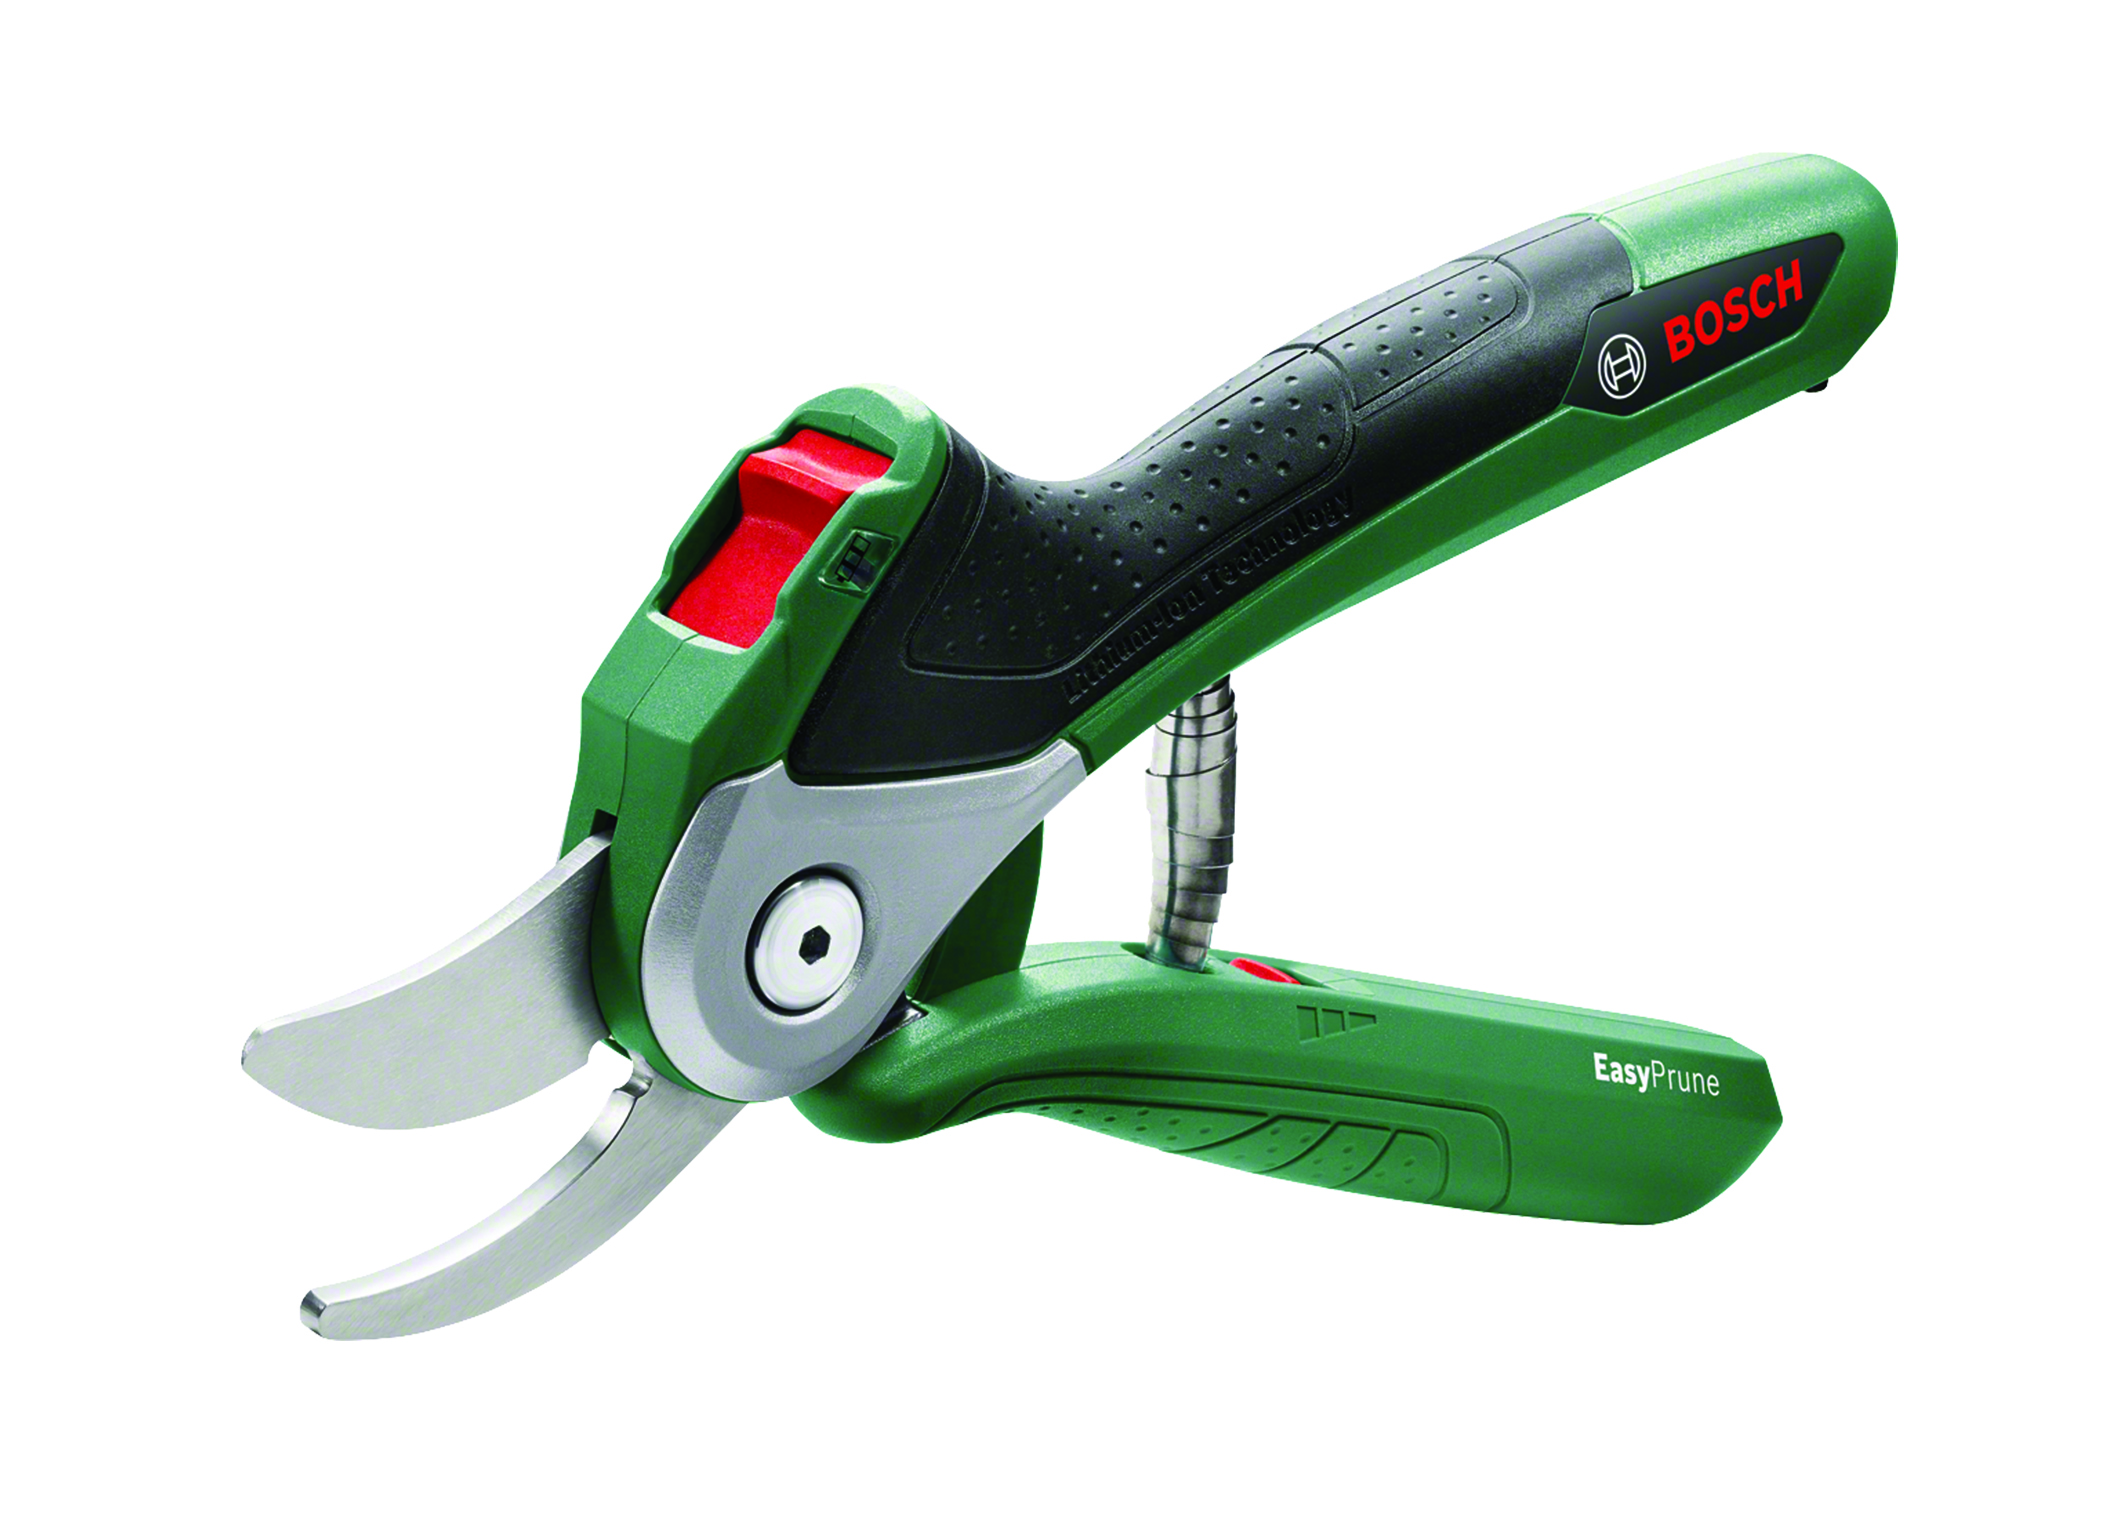 Makes light work of cutting branches, thick or thin: Bosch EasyPrune power-assisted cordless secateurs